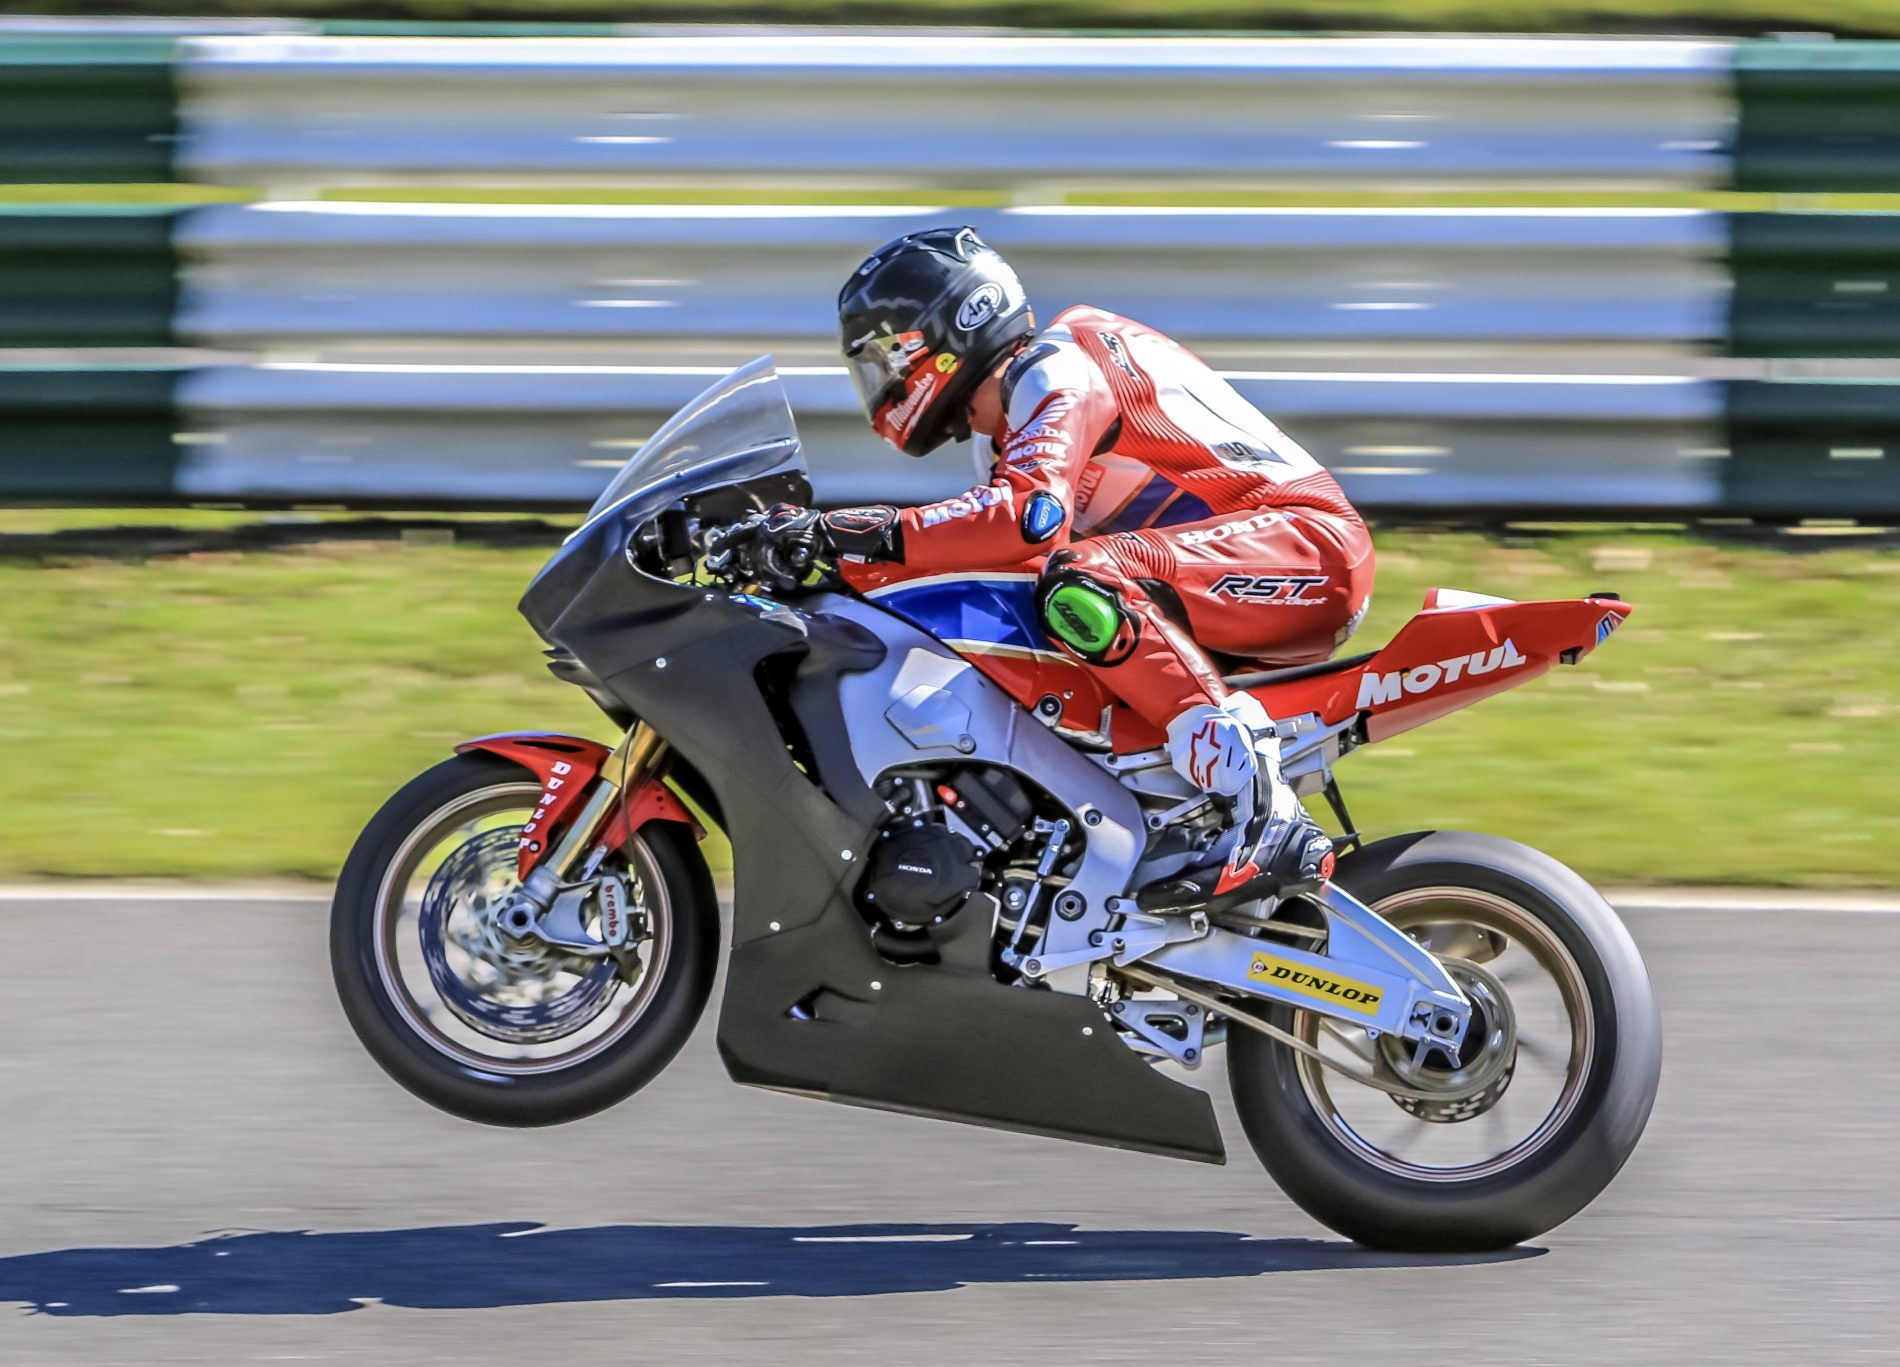 Honda Racing at Cadwell 5 April 2018 unknown rider